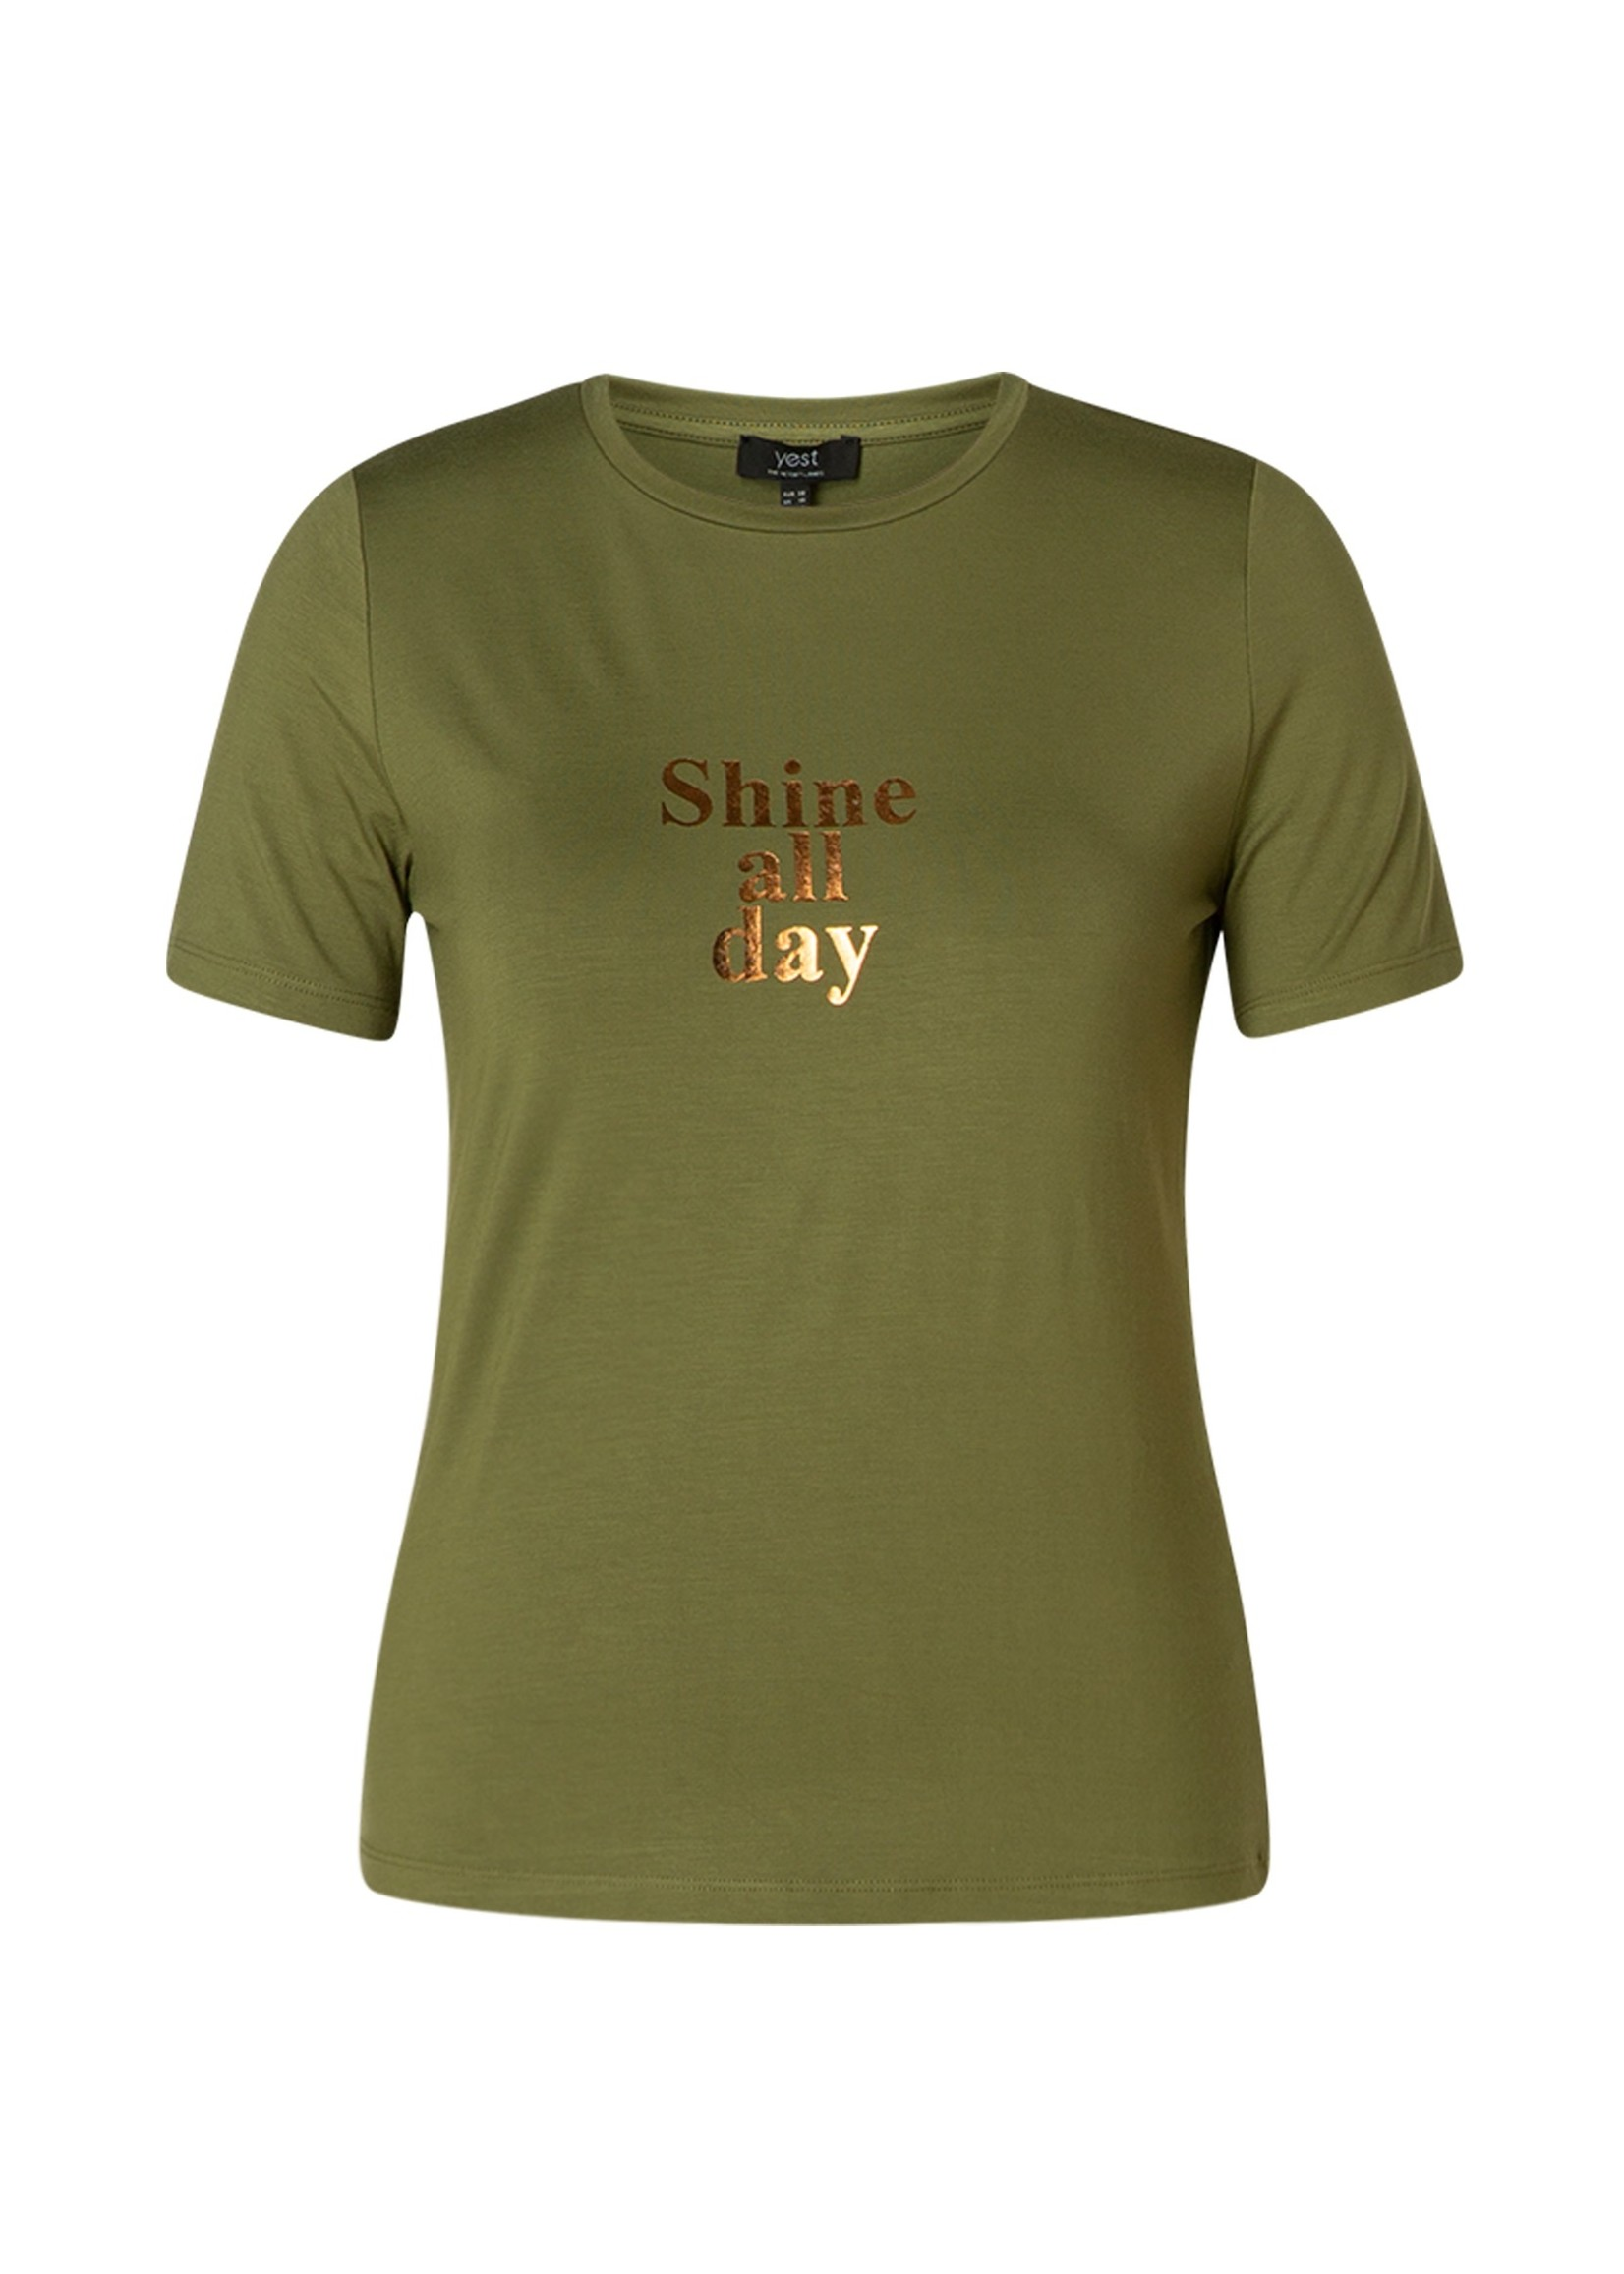 Yest Yest Ceejay T-shirt Olive